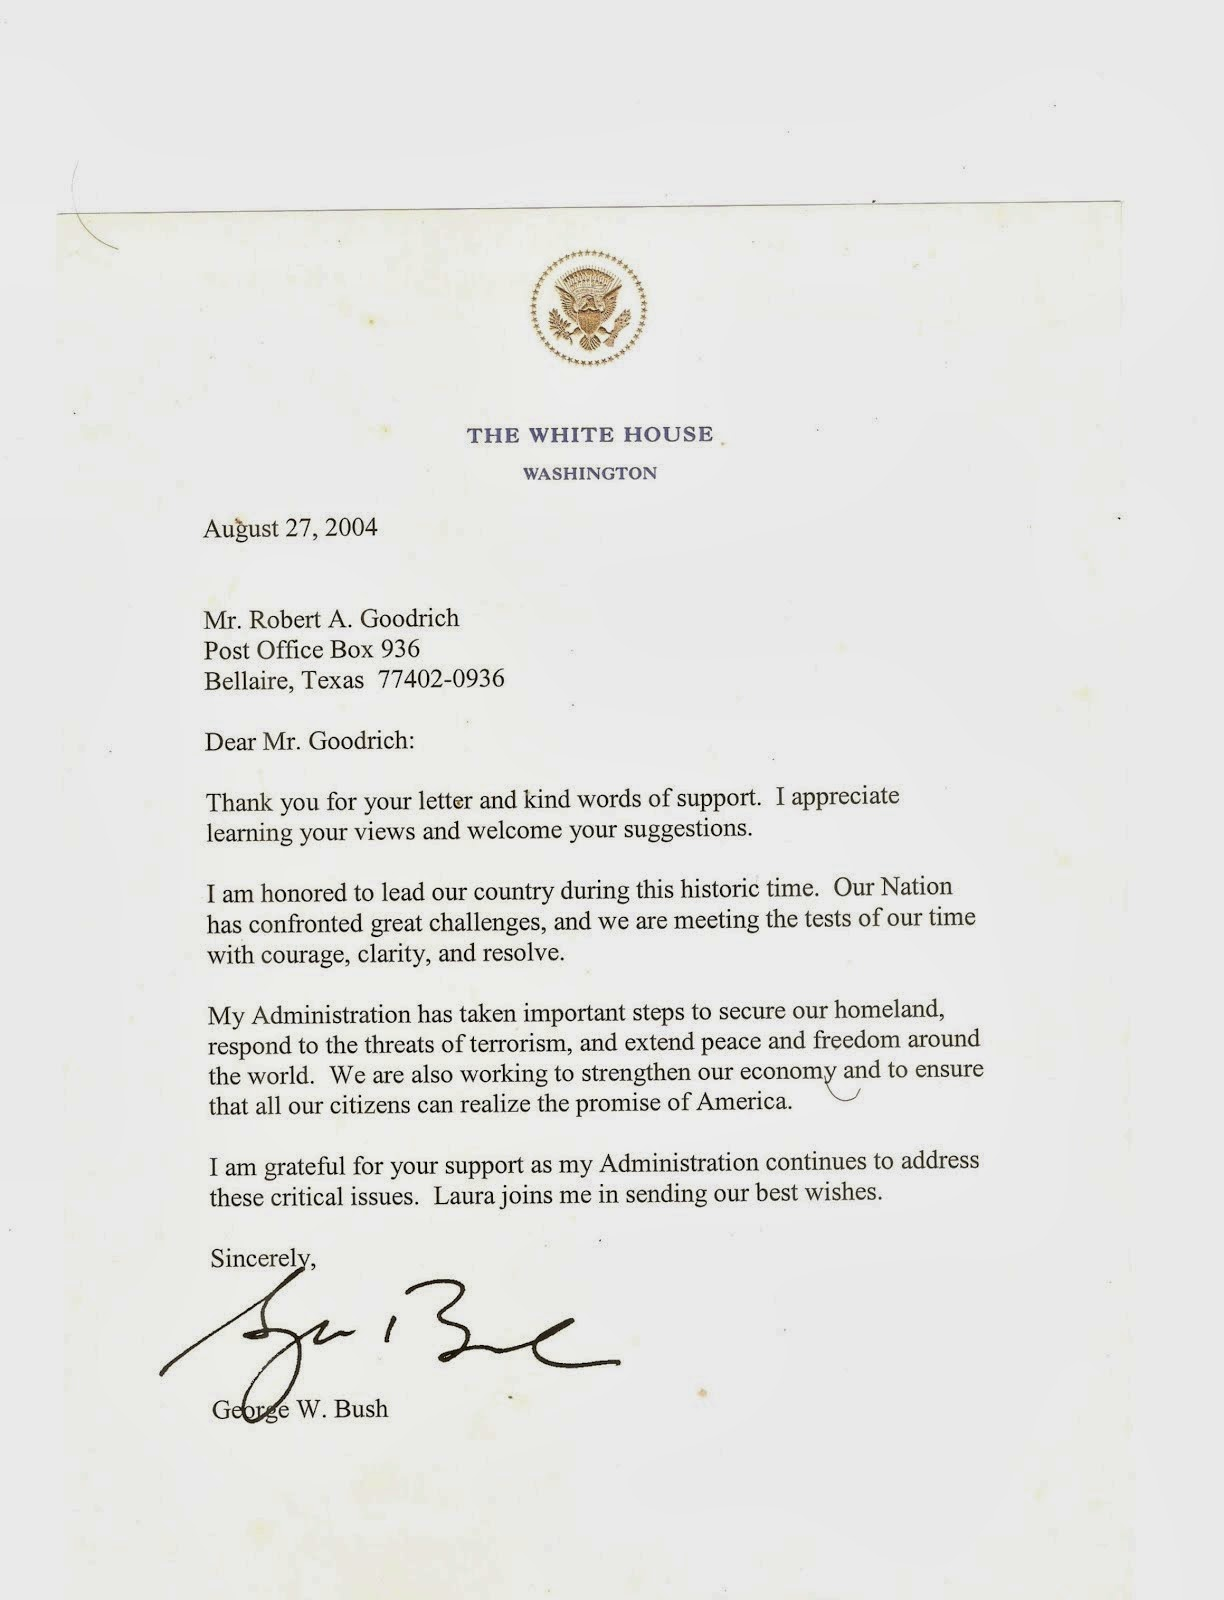 Carta del Ex-Presidente George W. Bush